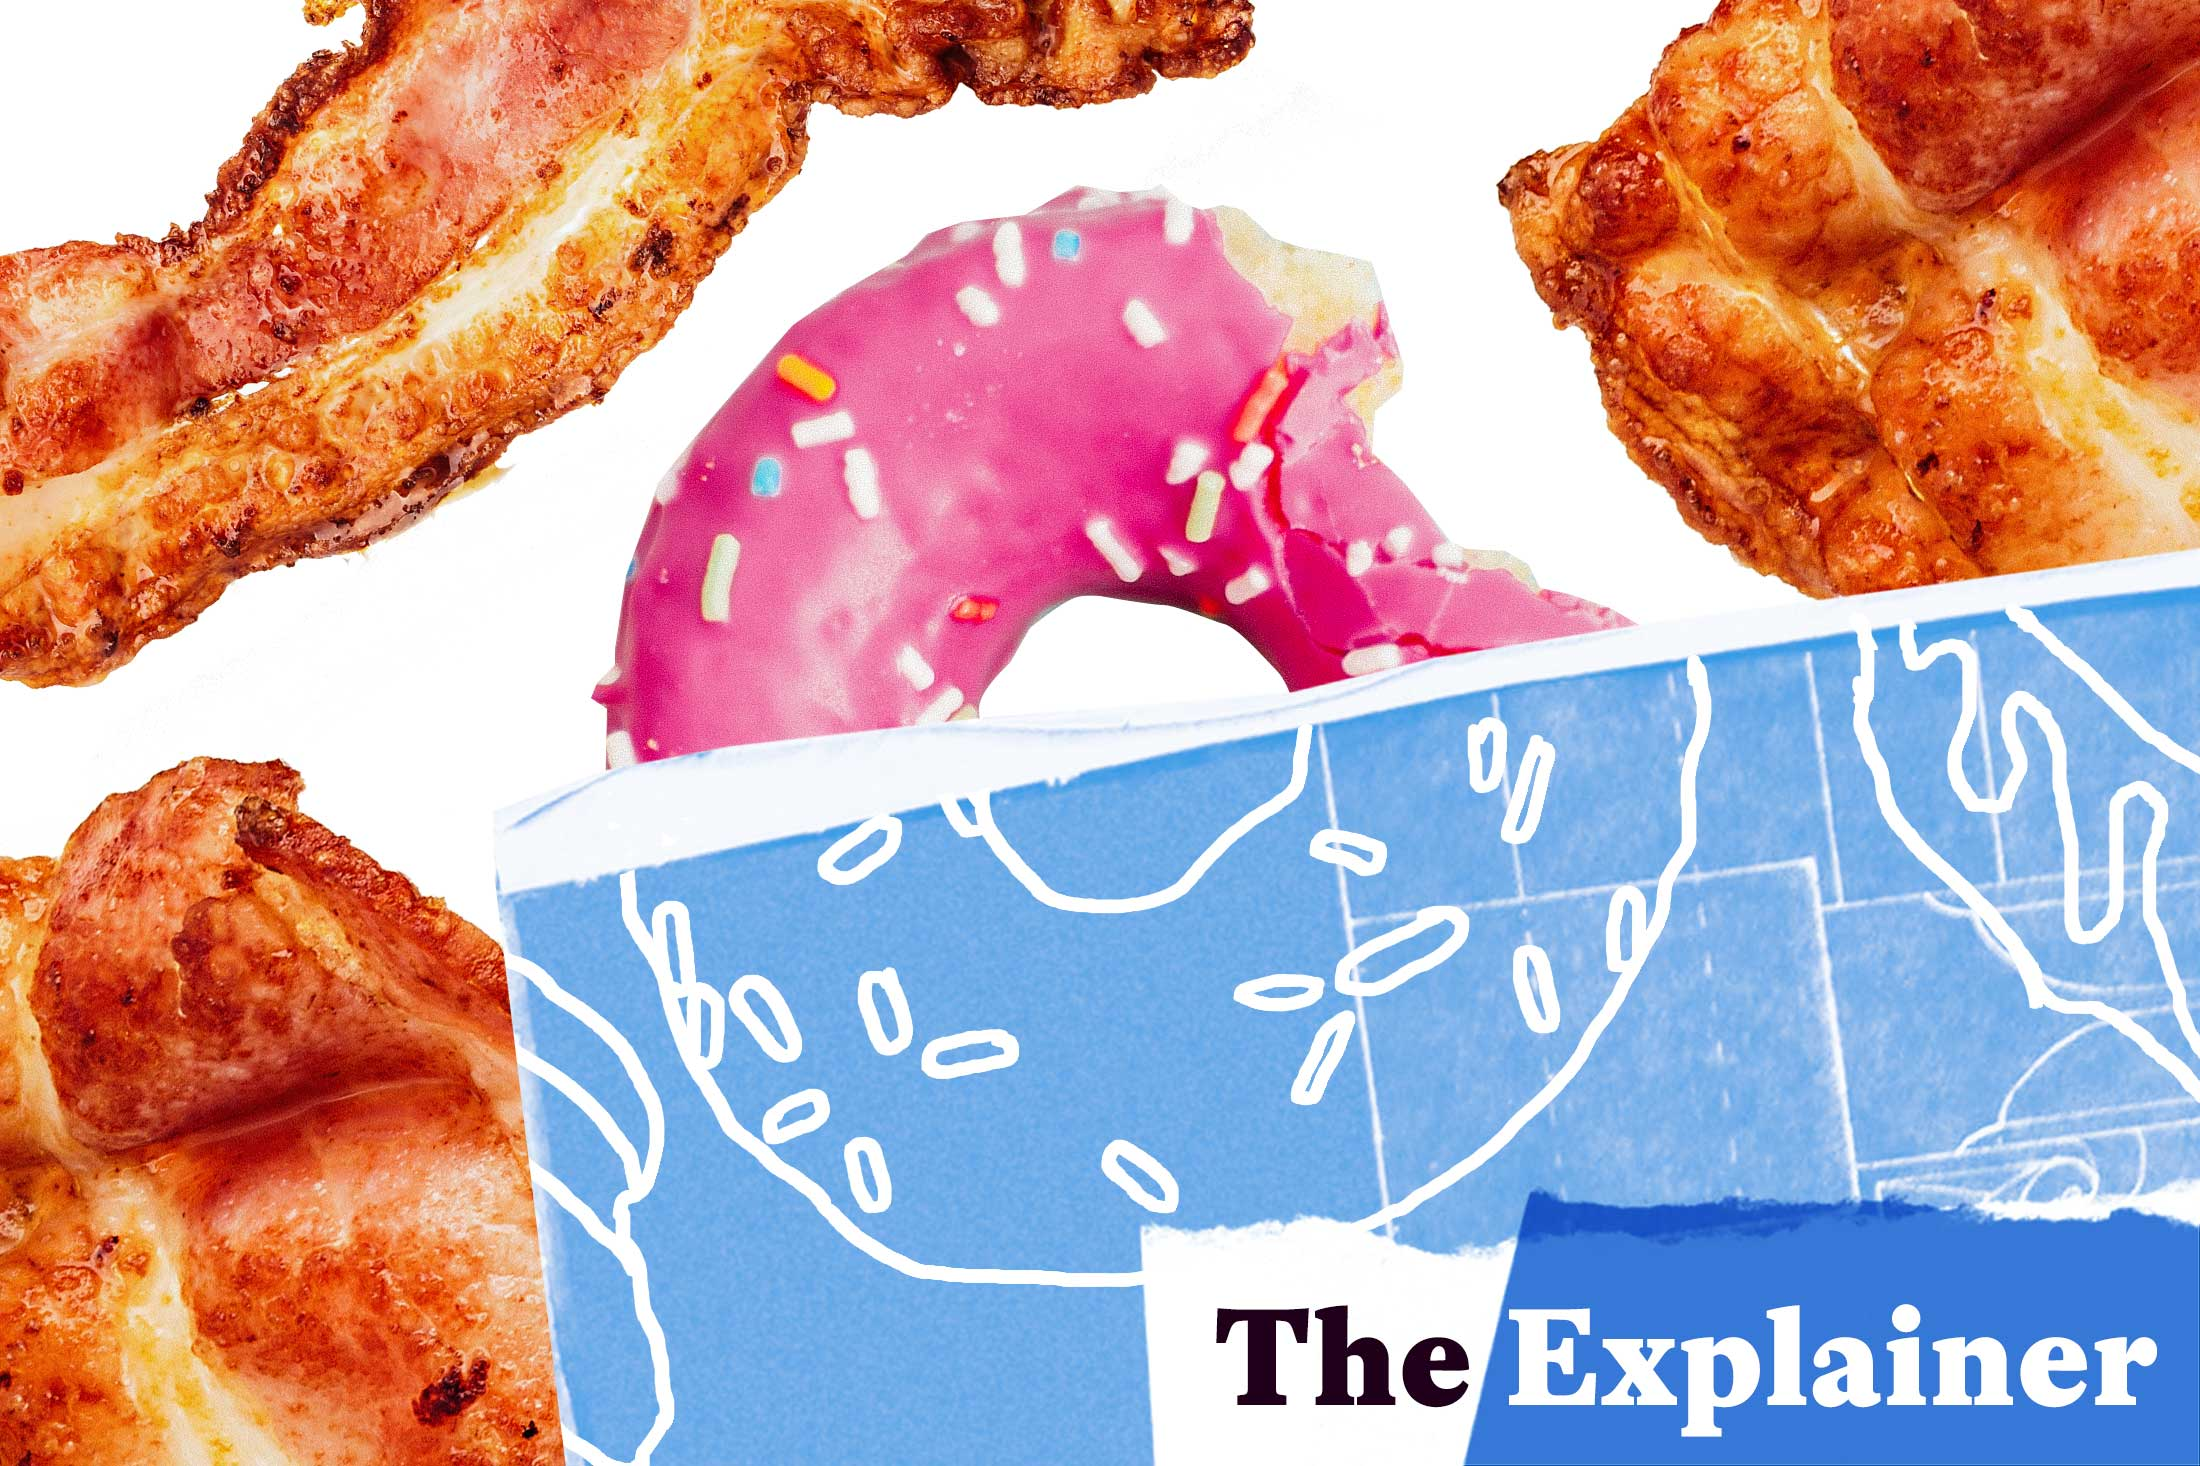 Donut and bacon strips overlaid with a blueprint.